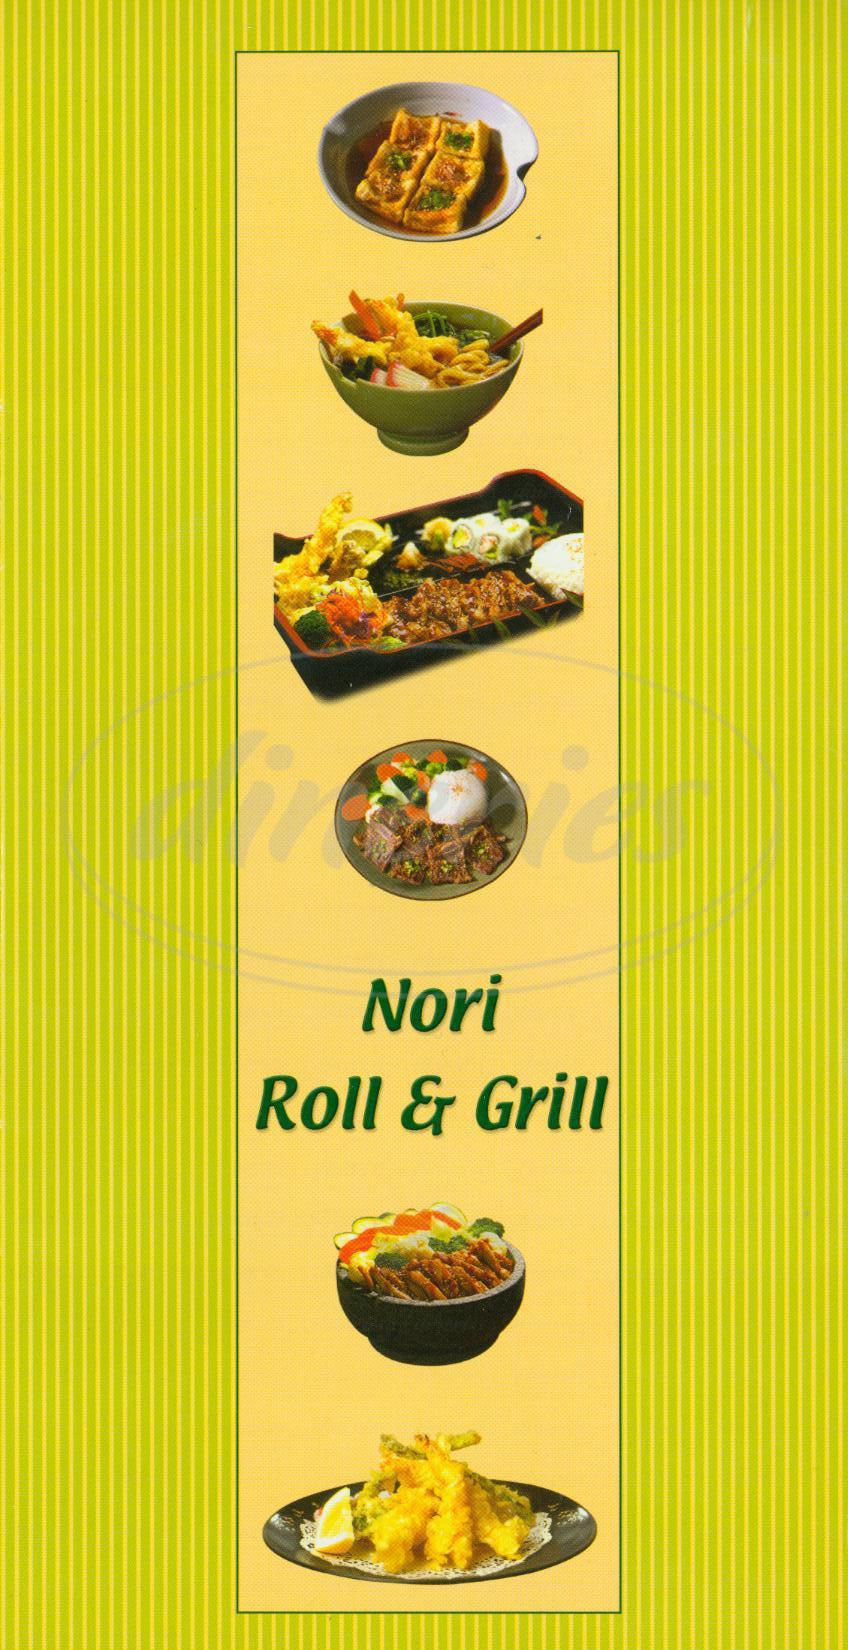 menu for Nori Roll & Grill